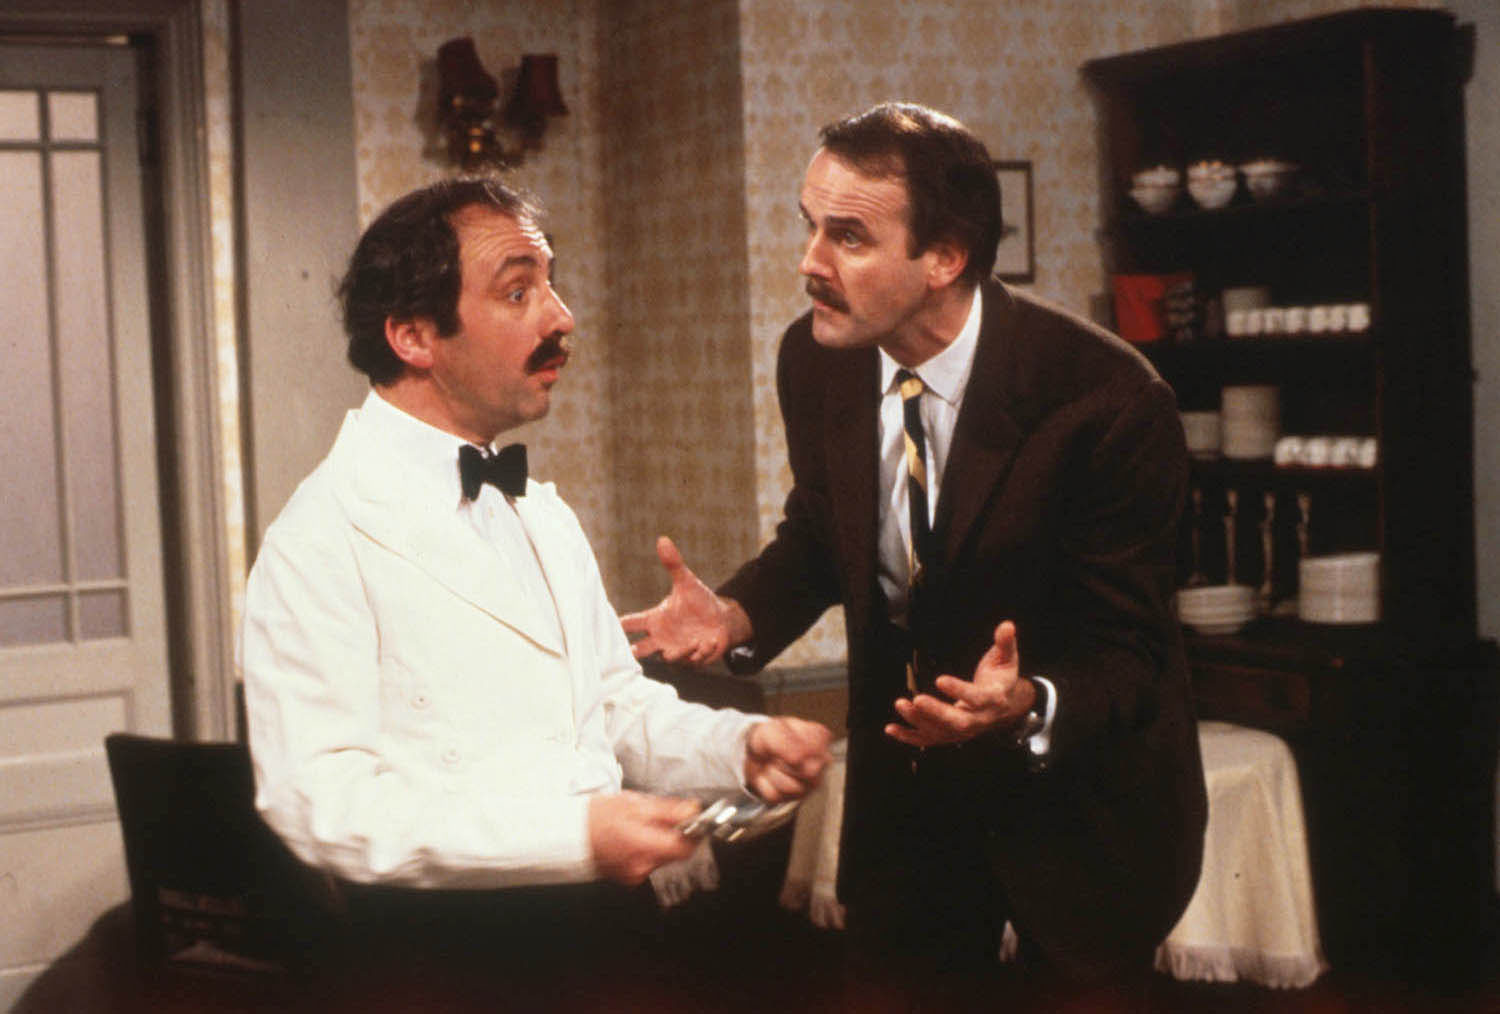 Andrew Sachs as Manuel (Left) and John Cleese as Basil in BBC's Fawlty Towers.